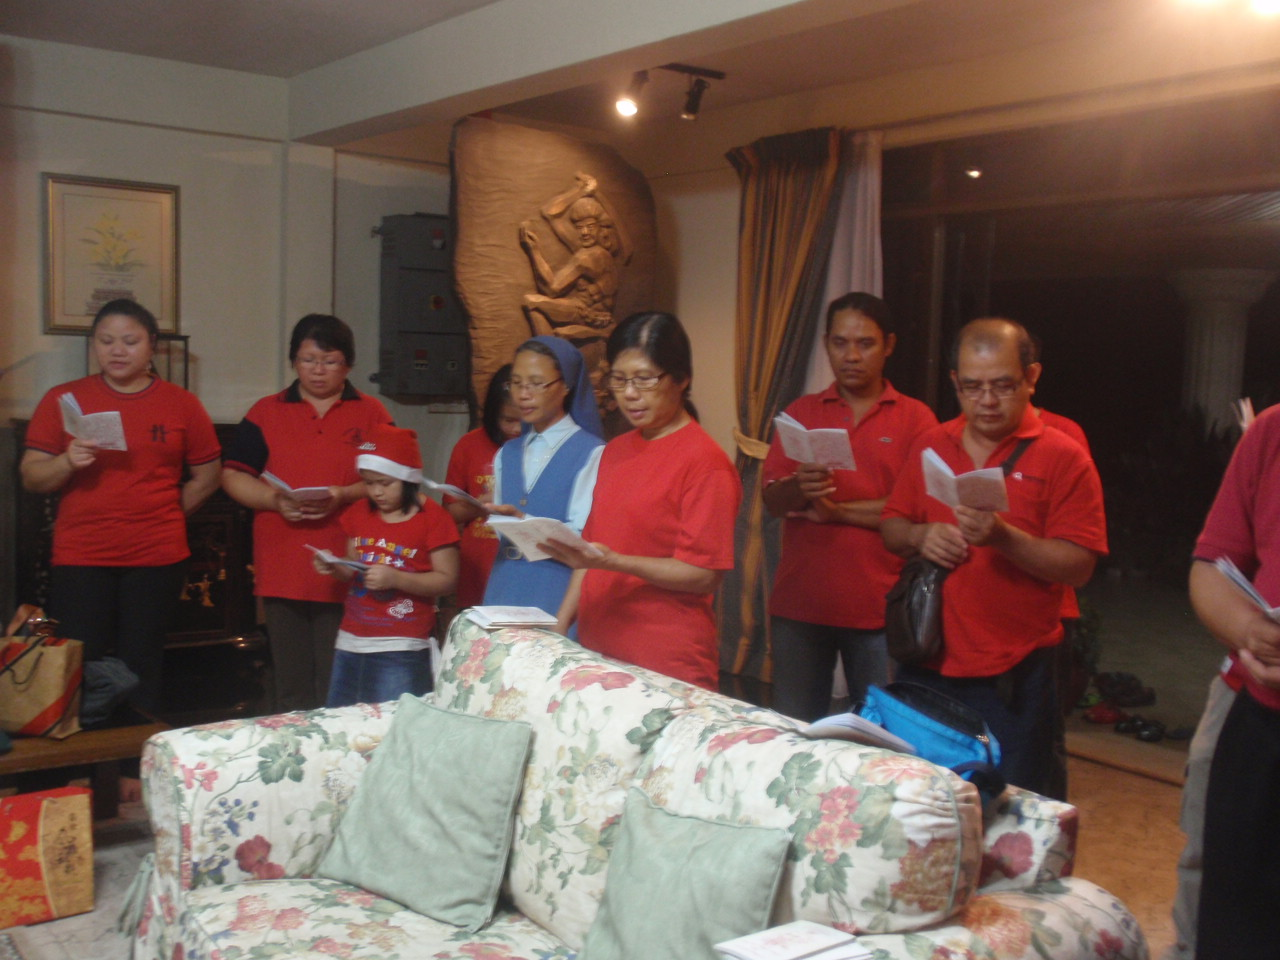 A section of the carollers singing in the home of one of the families visited.